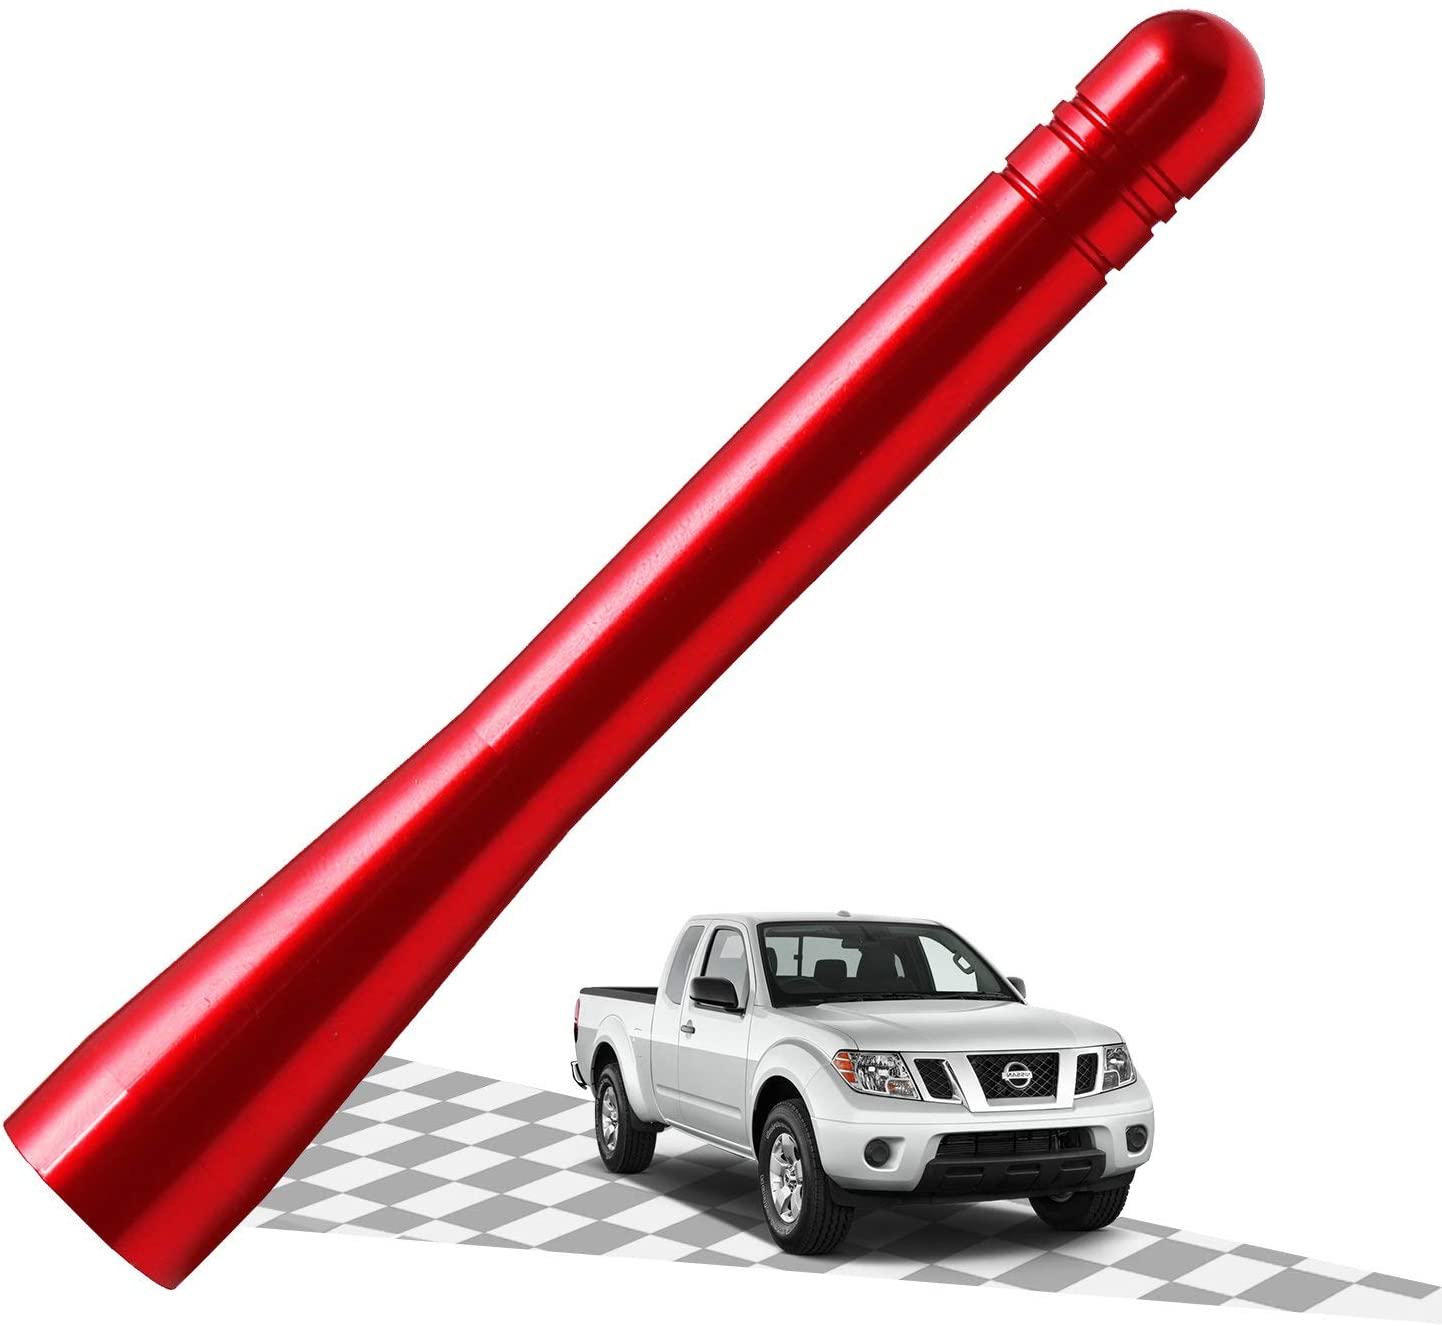 Elitezip Replacement Antenna for Mini Cooper 2001-2018 | Optimized AM/FM Reception with Tough Material | 4 Inches - Vermilion Red